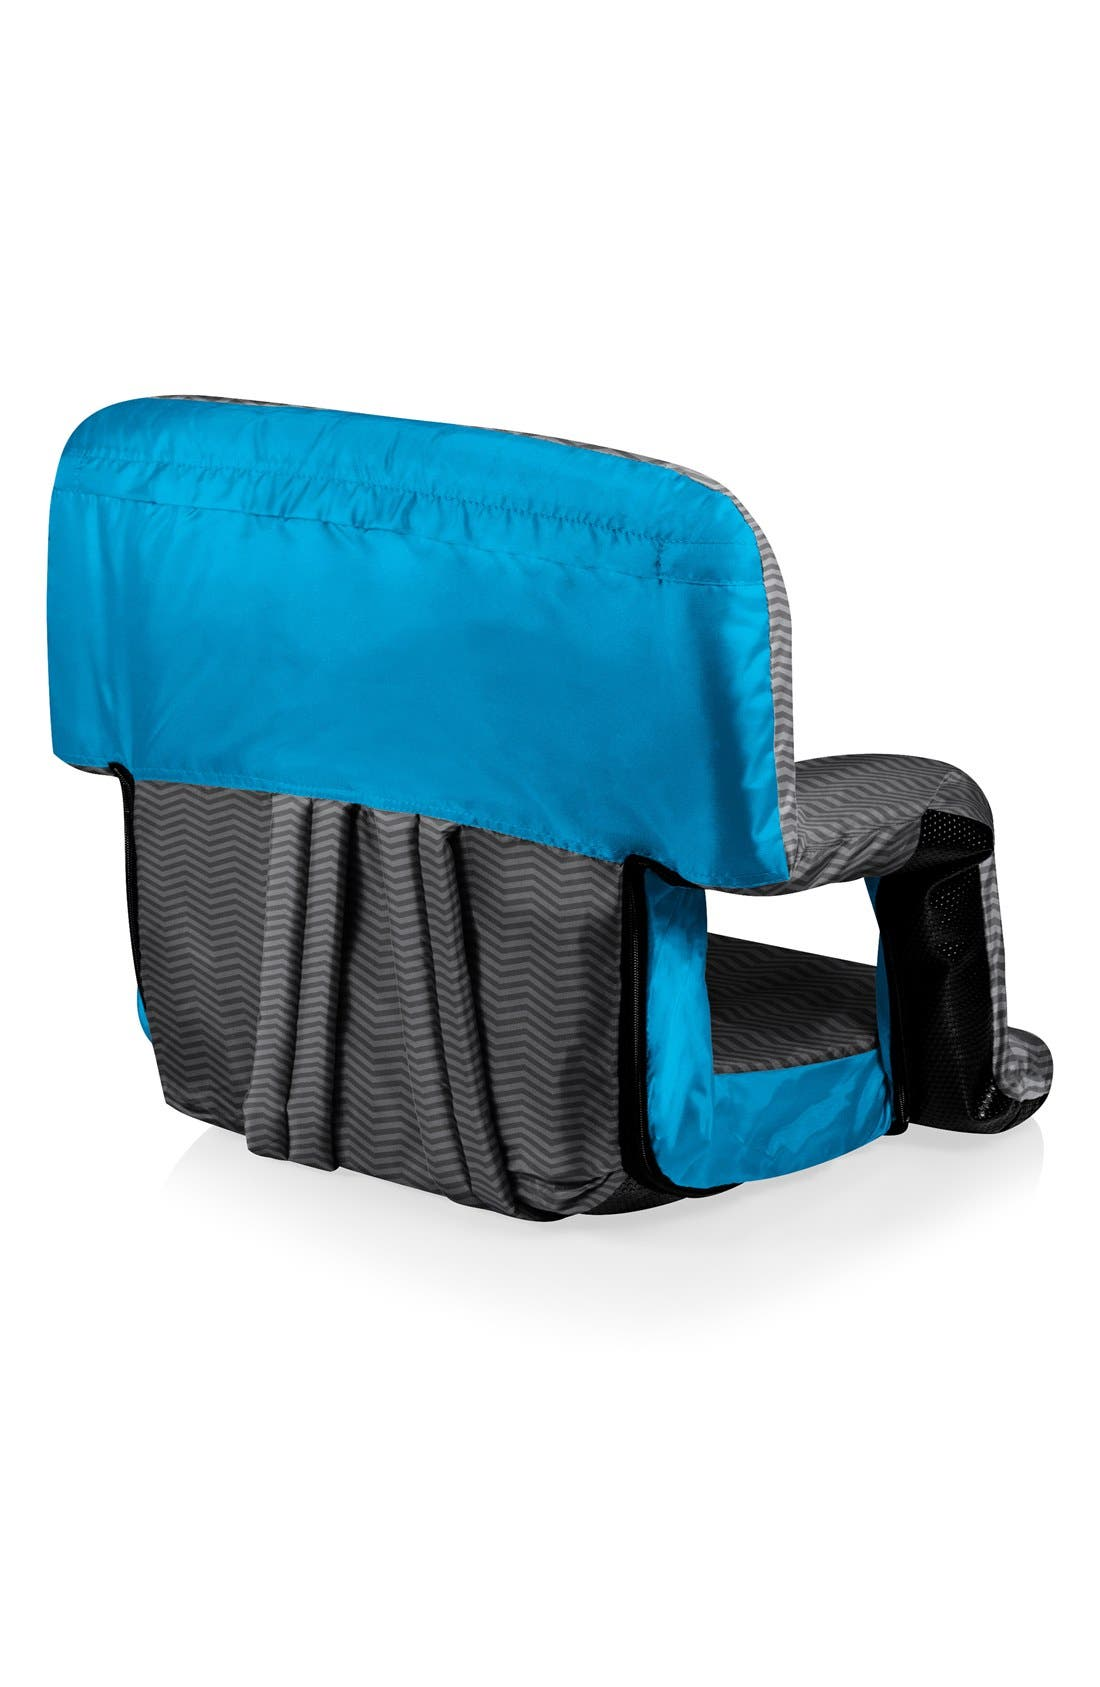 'VenturaSeat' Portable Fold-Up Chair,                             Alternate thumbnail 2, color,                             Waves